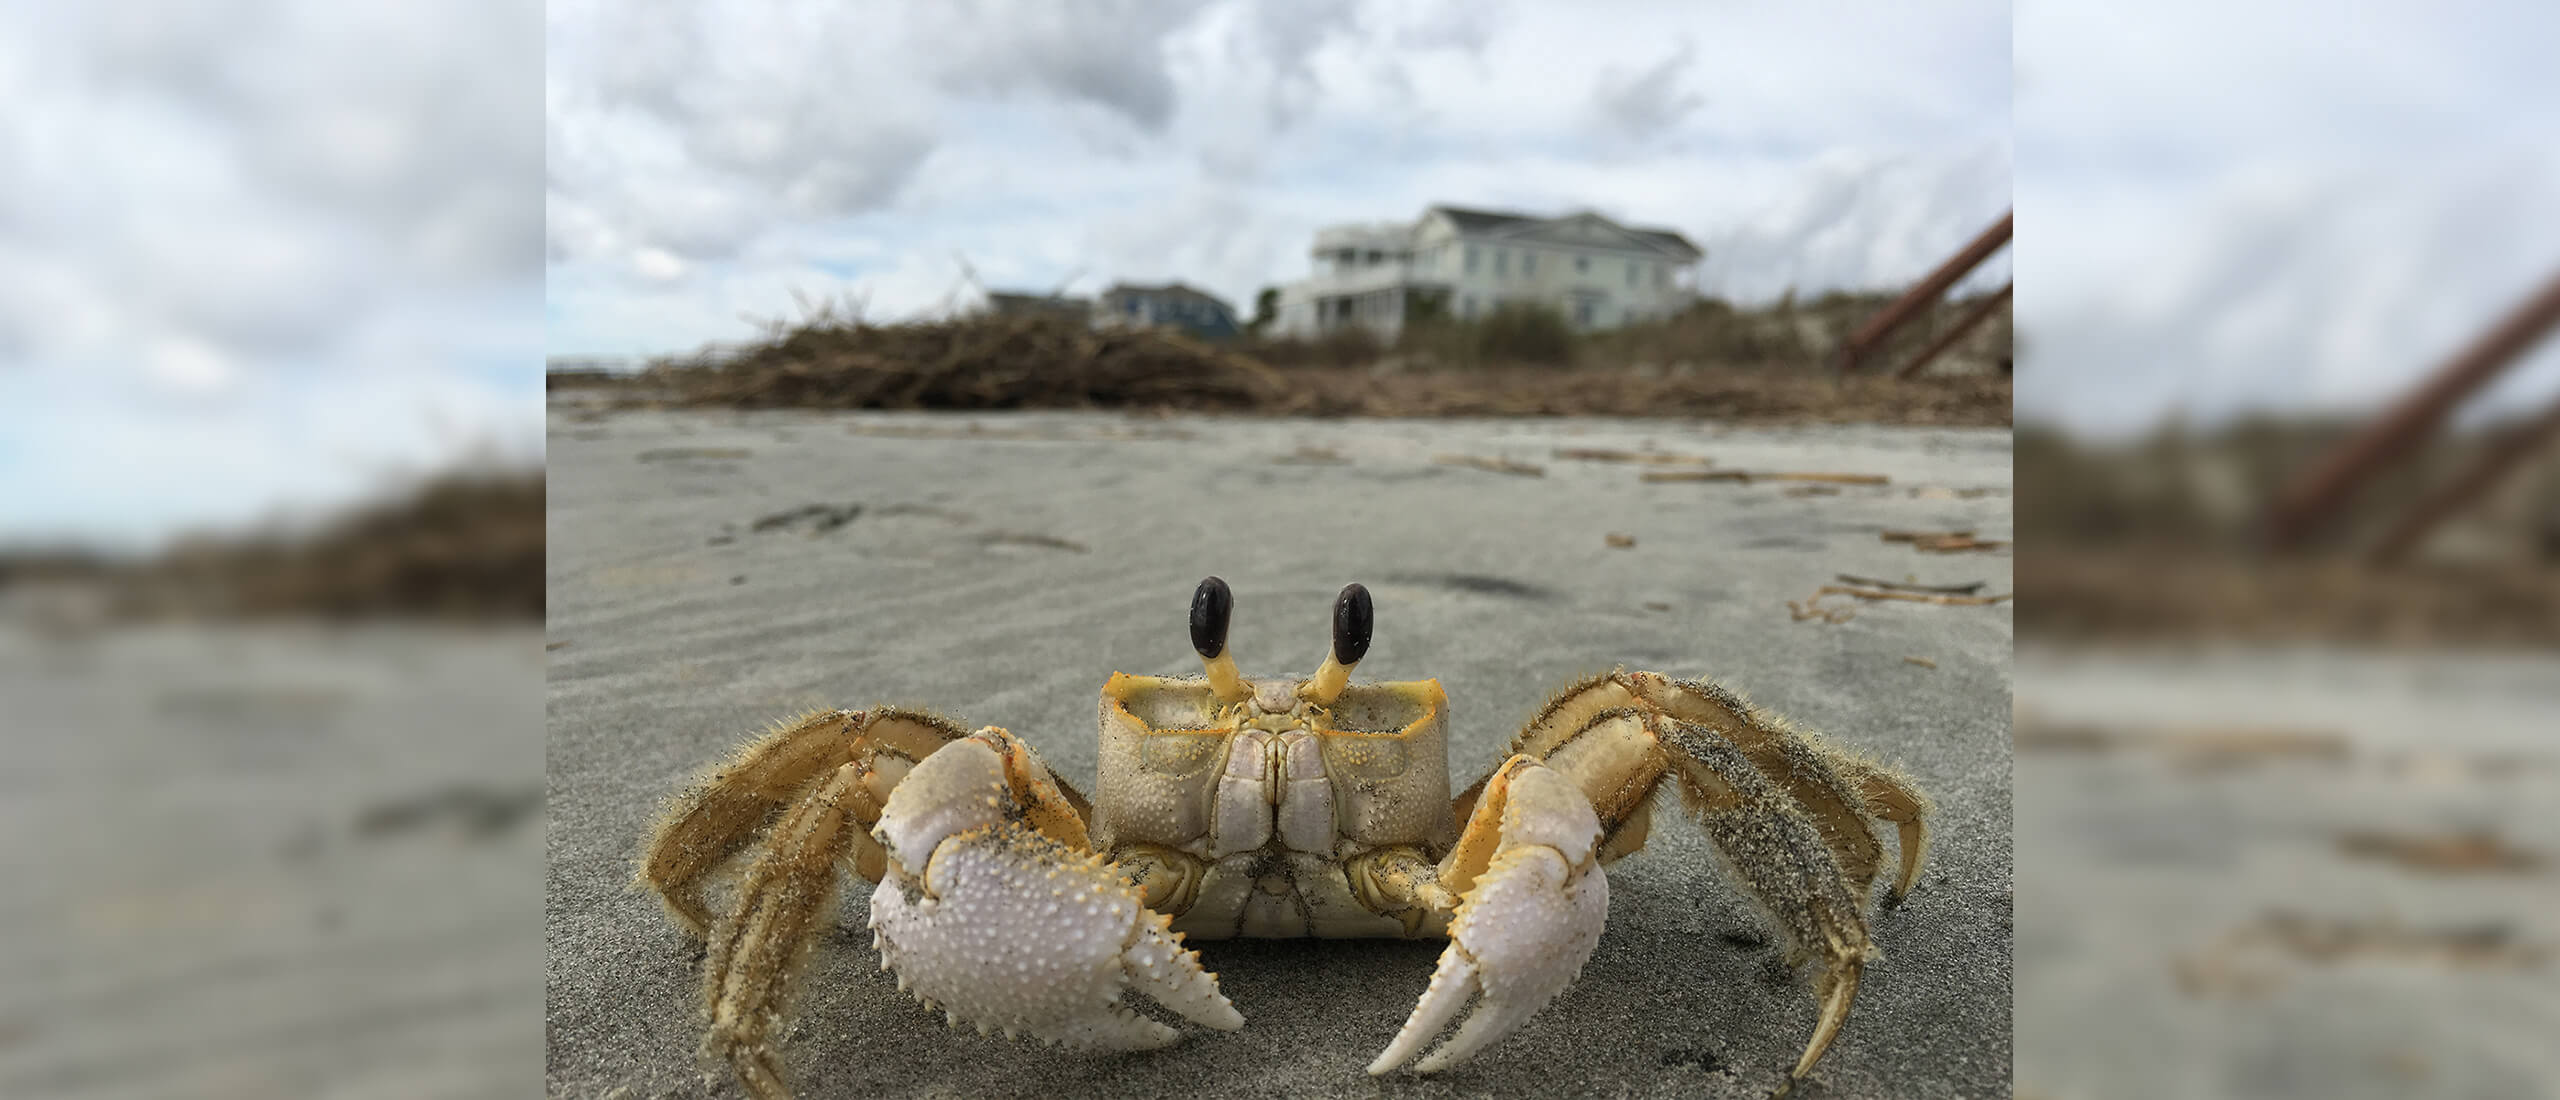 Ghost Crab, Isle of Palms, SC - James Kobierowski